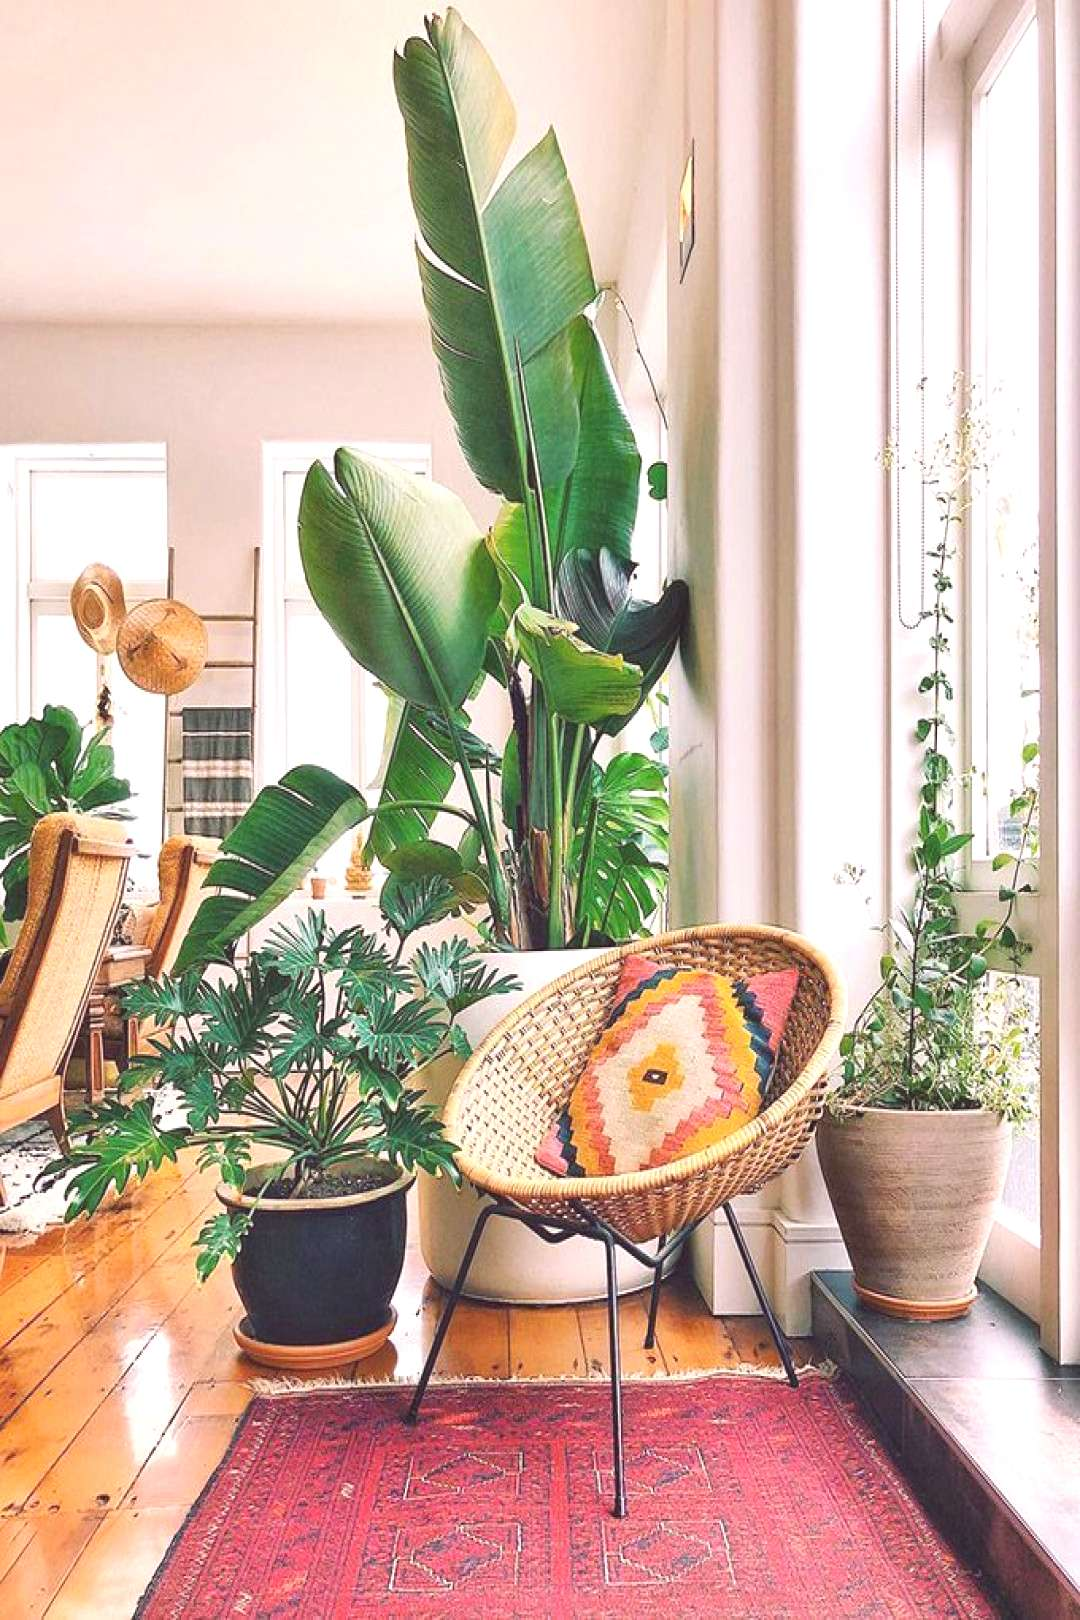 Boho Home Decor 11 Tips That Show You How To Pull It Off | Posh Pennies Boho Home Decor 11 Tips Tha